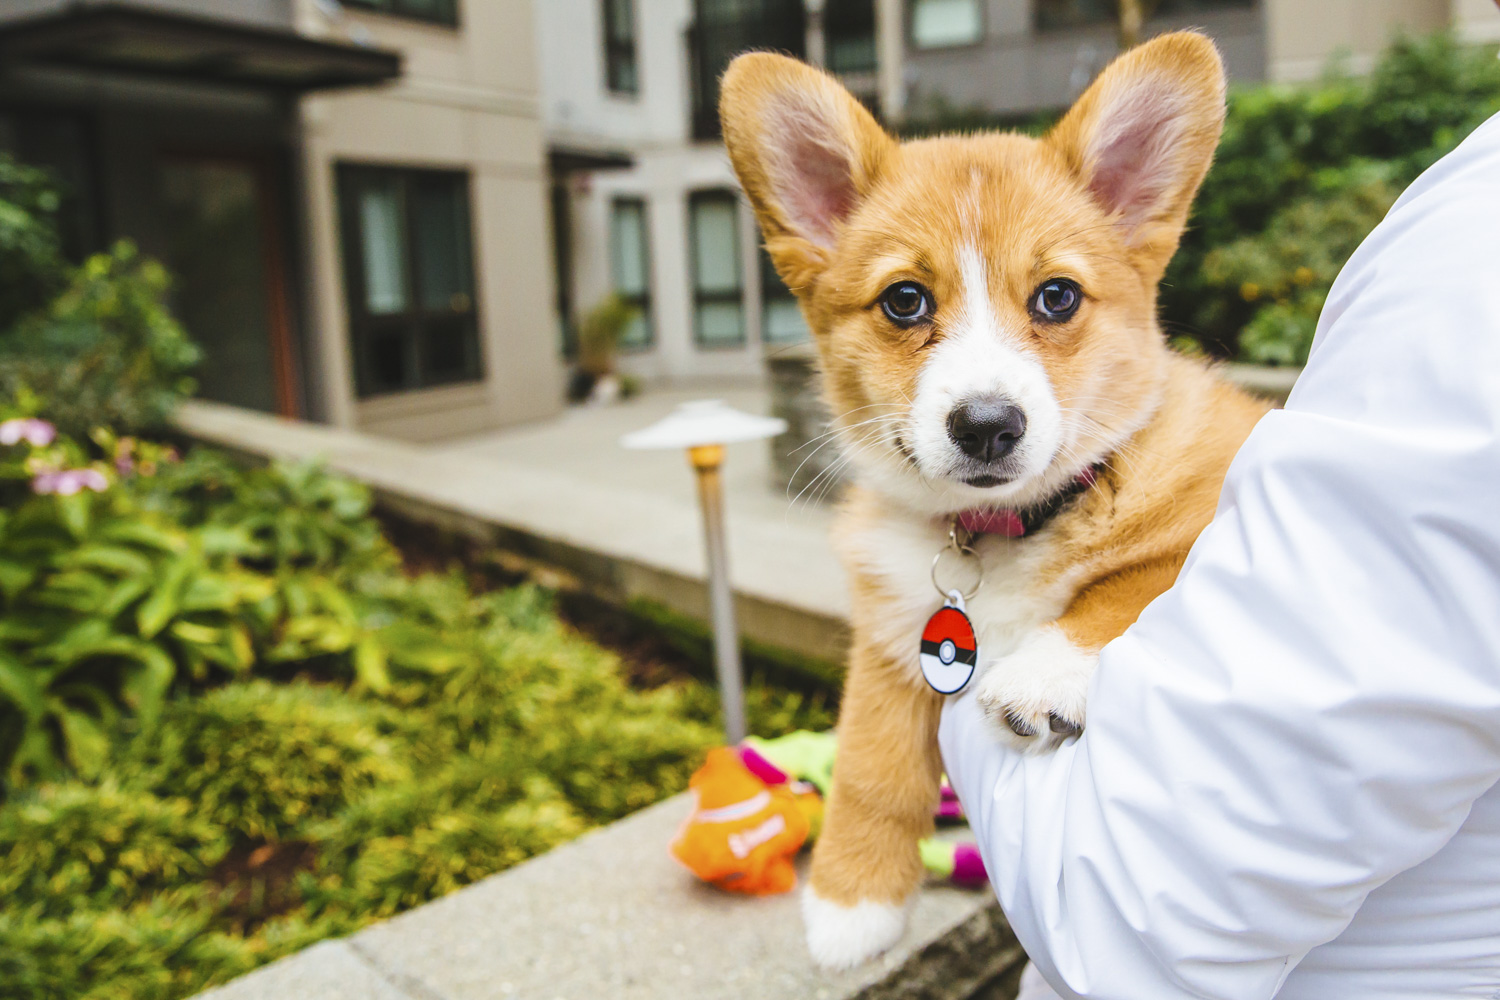 <p>How cute is Eevee! Eevee is short for Evangeline Thunderstone Magnolia which is like the best name ever, right? Eevee is a four month old Pembroke Welsh Corgi who is living the dream in the Capitol Hill neighborhood. Eevee likes chewing on bully stick, chicken and cheese, getting the zoomies and making her human chase her around the house, meeting new dogs and people. She dislikes going down stairs, hearing loud noises and getting nail trims. You can follow Eevee's journey through life on her instagram account, @eevee.corgi.{&amp;nbsp;}The Seattle RUFFined Spotlight is a weekly profile of local pets living and loving life in the PNW. If you or someone you know has a pet you'd like featured, email us at hello@seattlerefined.com or tag #SeattleRUFFined and your furbaby could be the next spotlighted! (Image: Sunita Martini / Seattle Refined).</p>